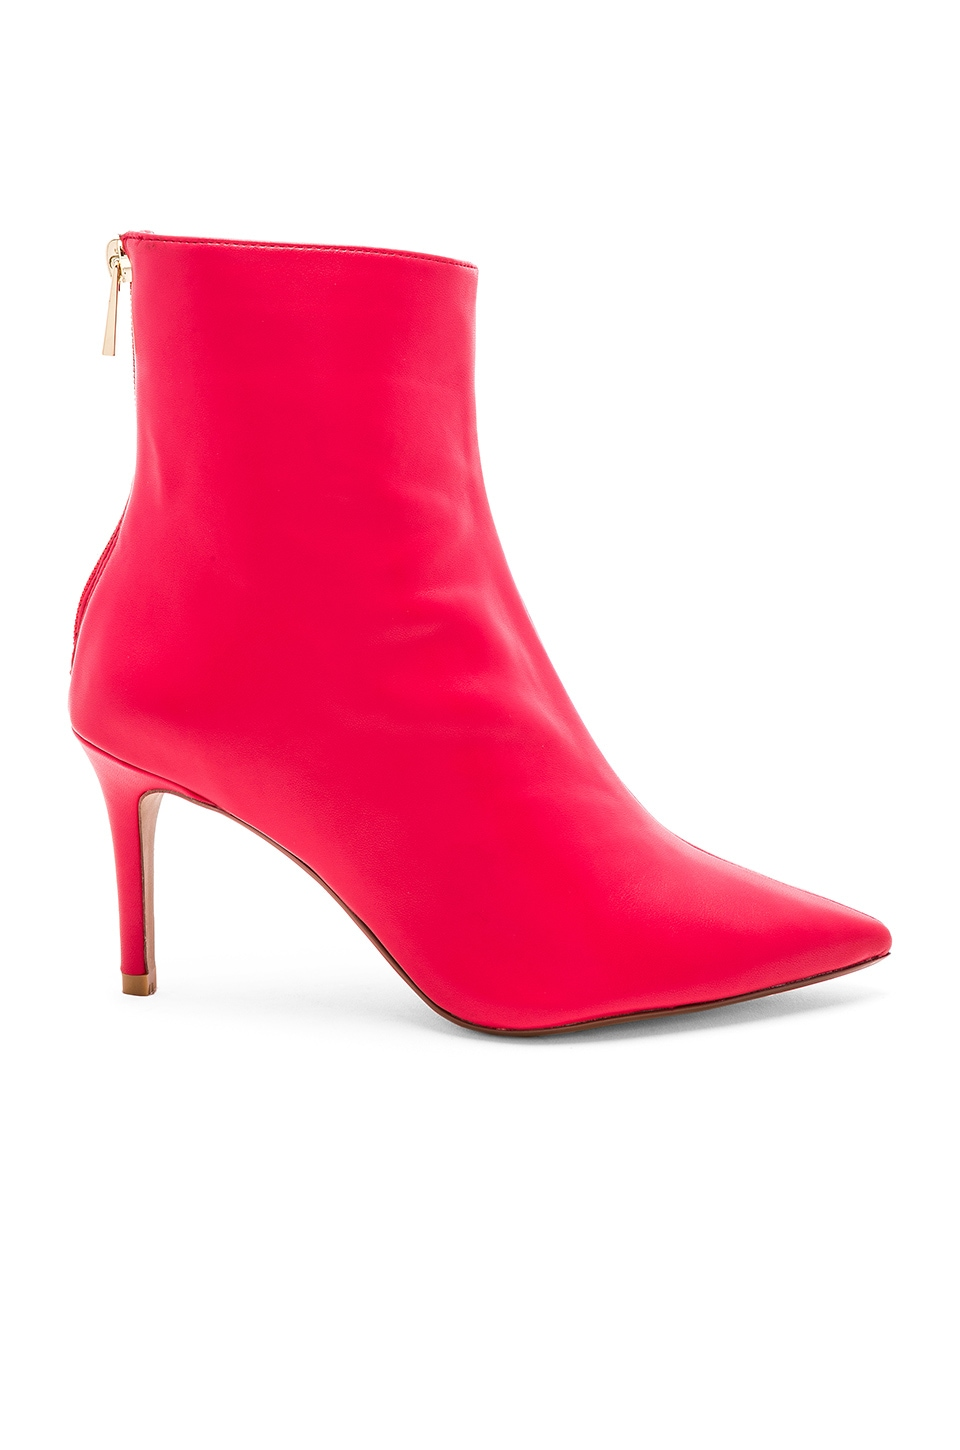 RAYE Pocatello Bootie in Red